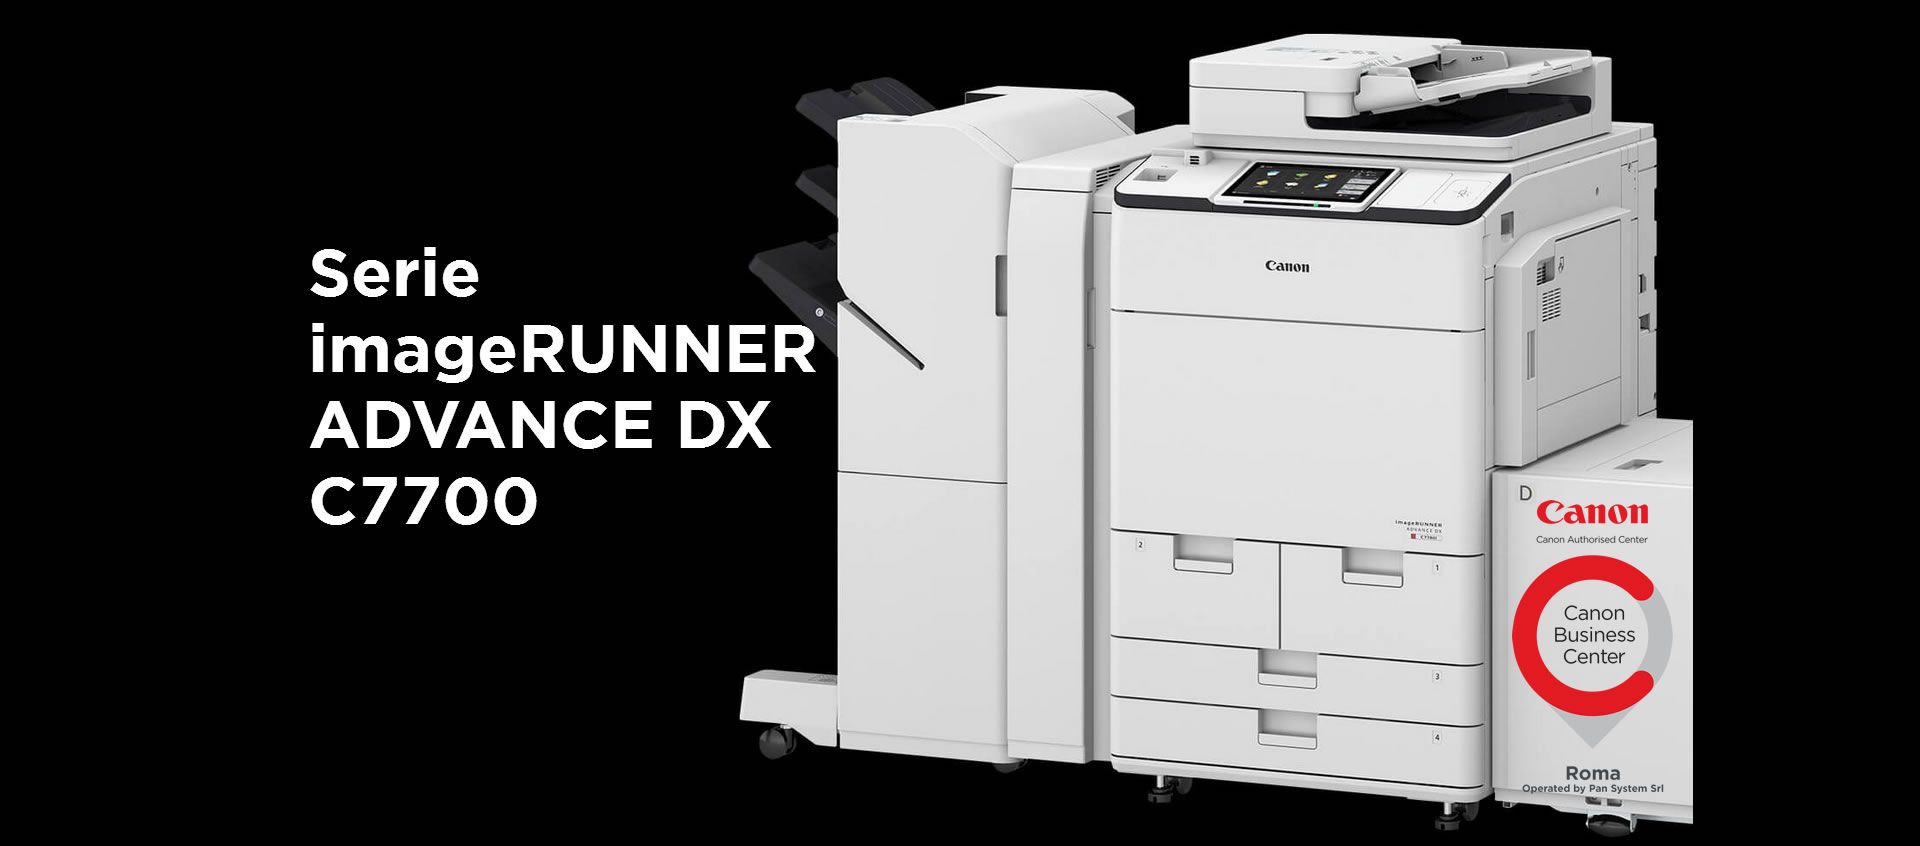 imageRUNNER ADVANCE DX C7700